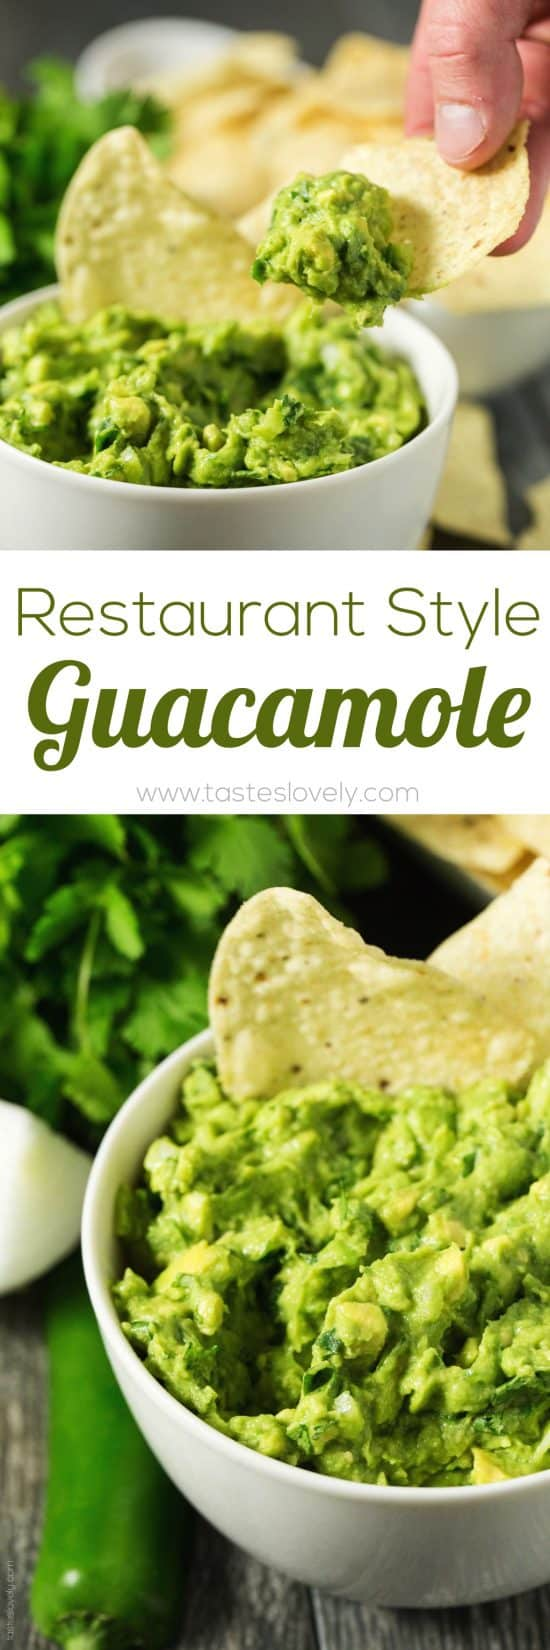 Mexican Restaurant Style Guacamole